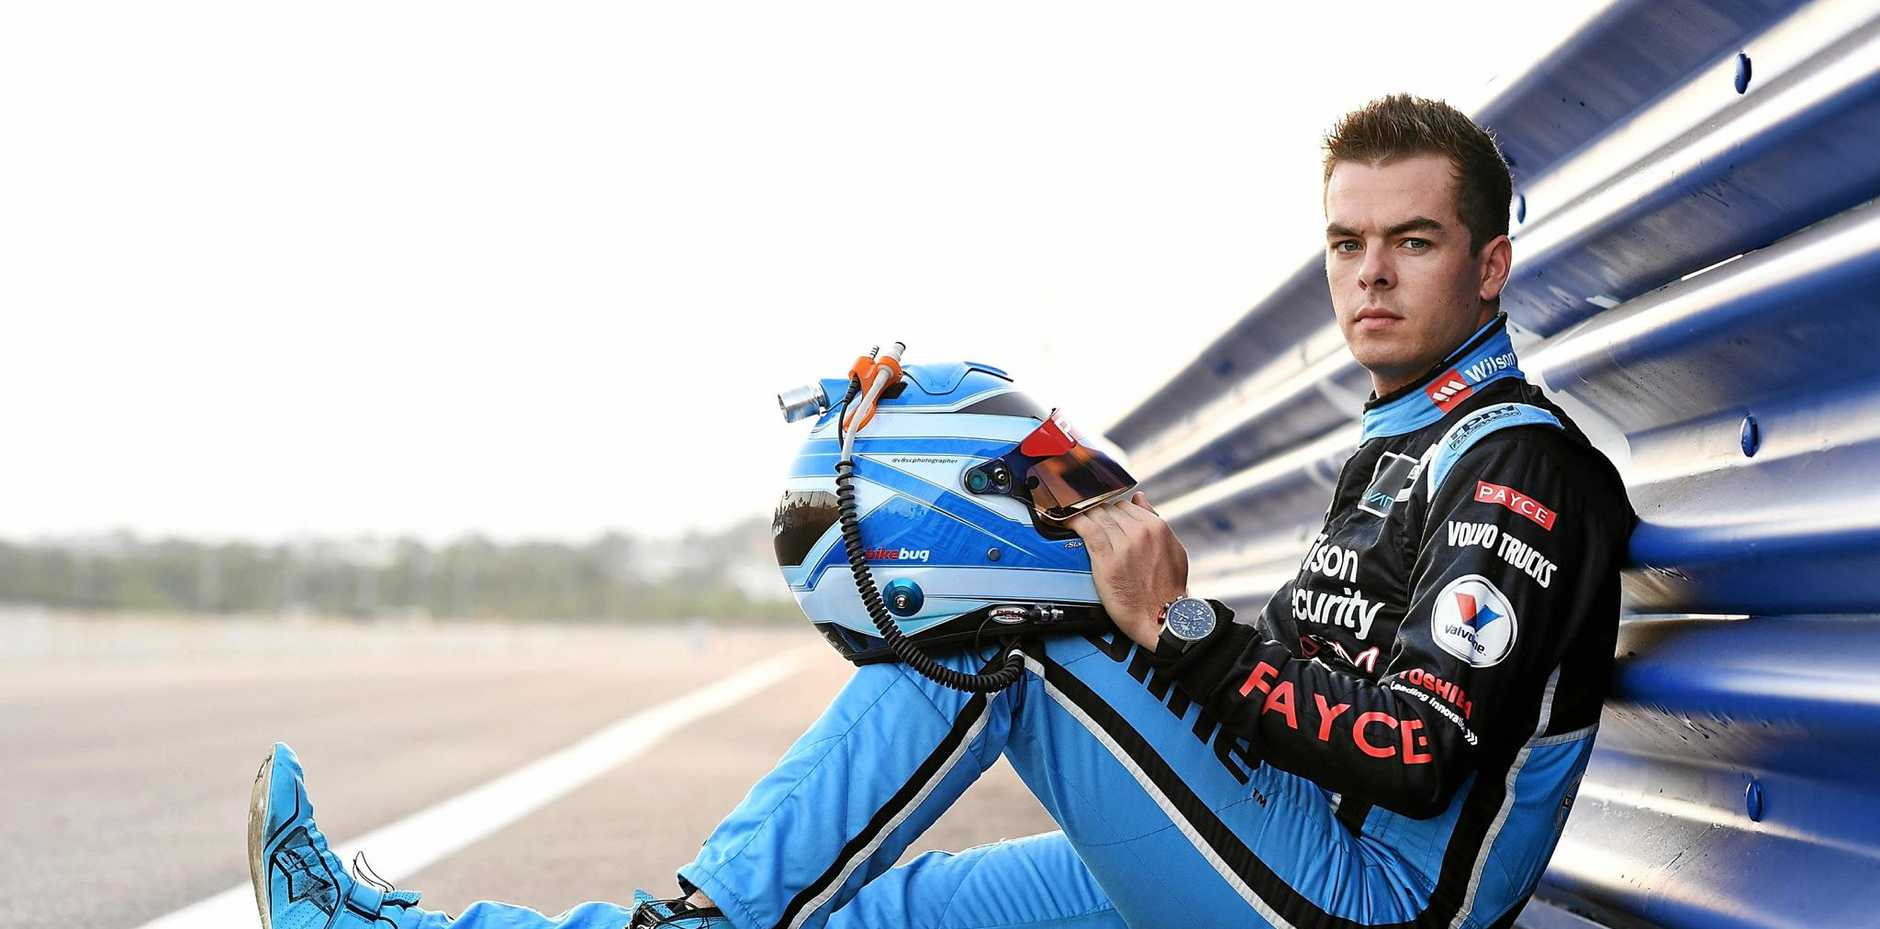 Scott McLaughlin is heading to Bathurst in pursuit of a maiden win on the famous circuit.